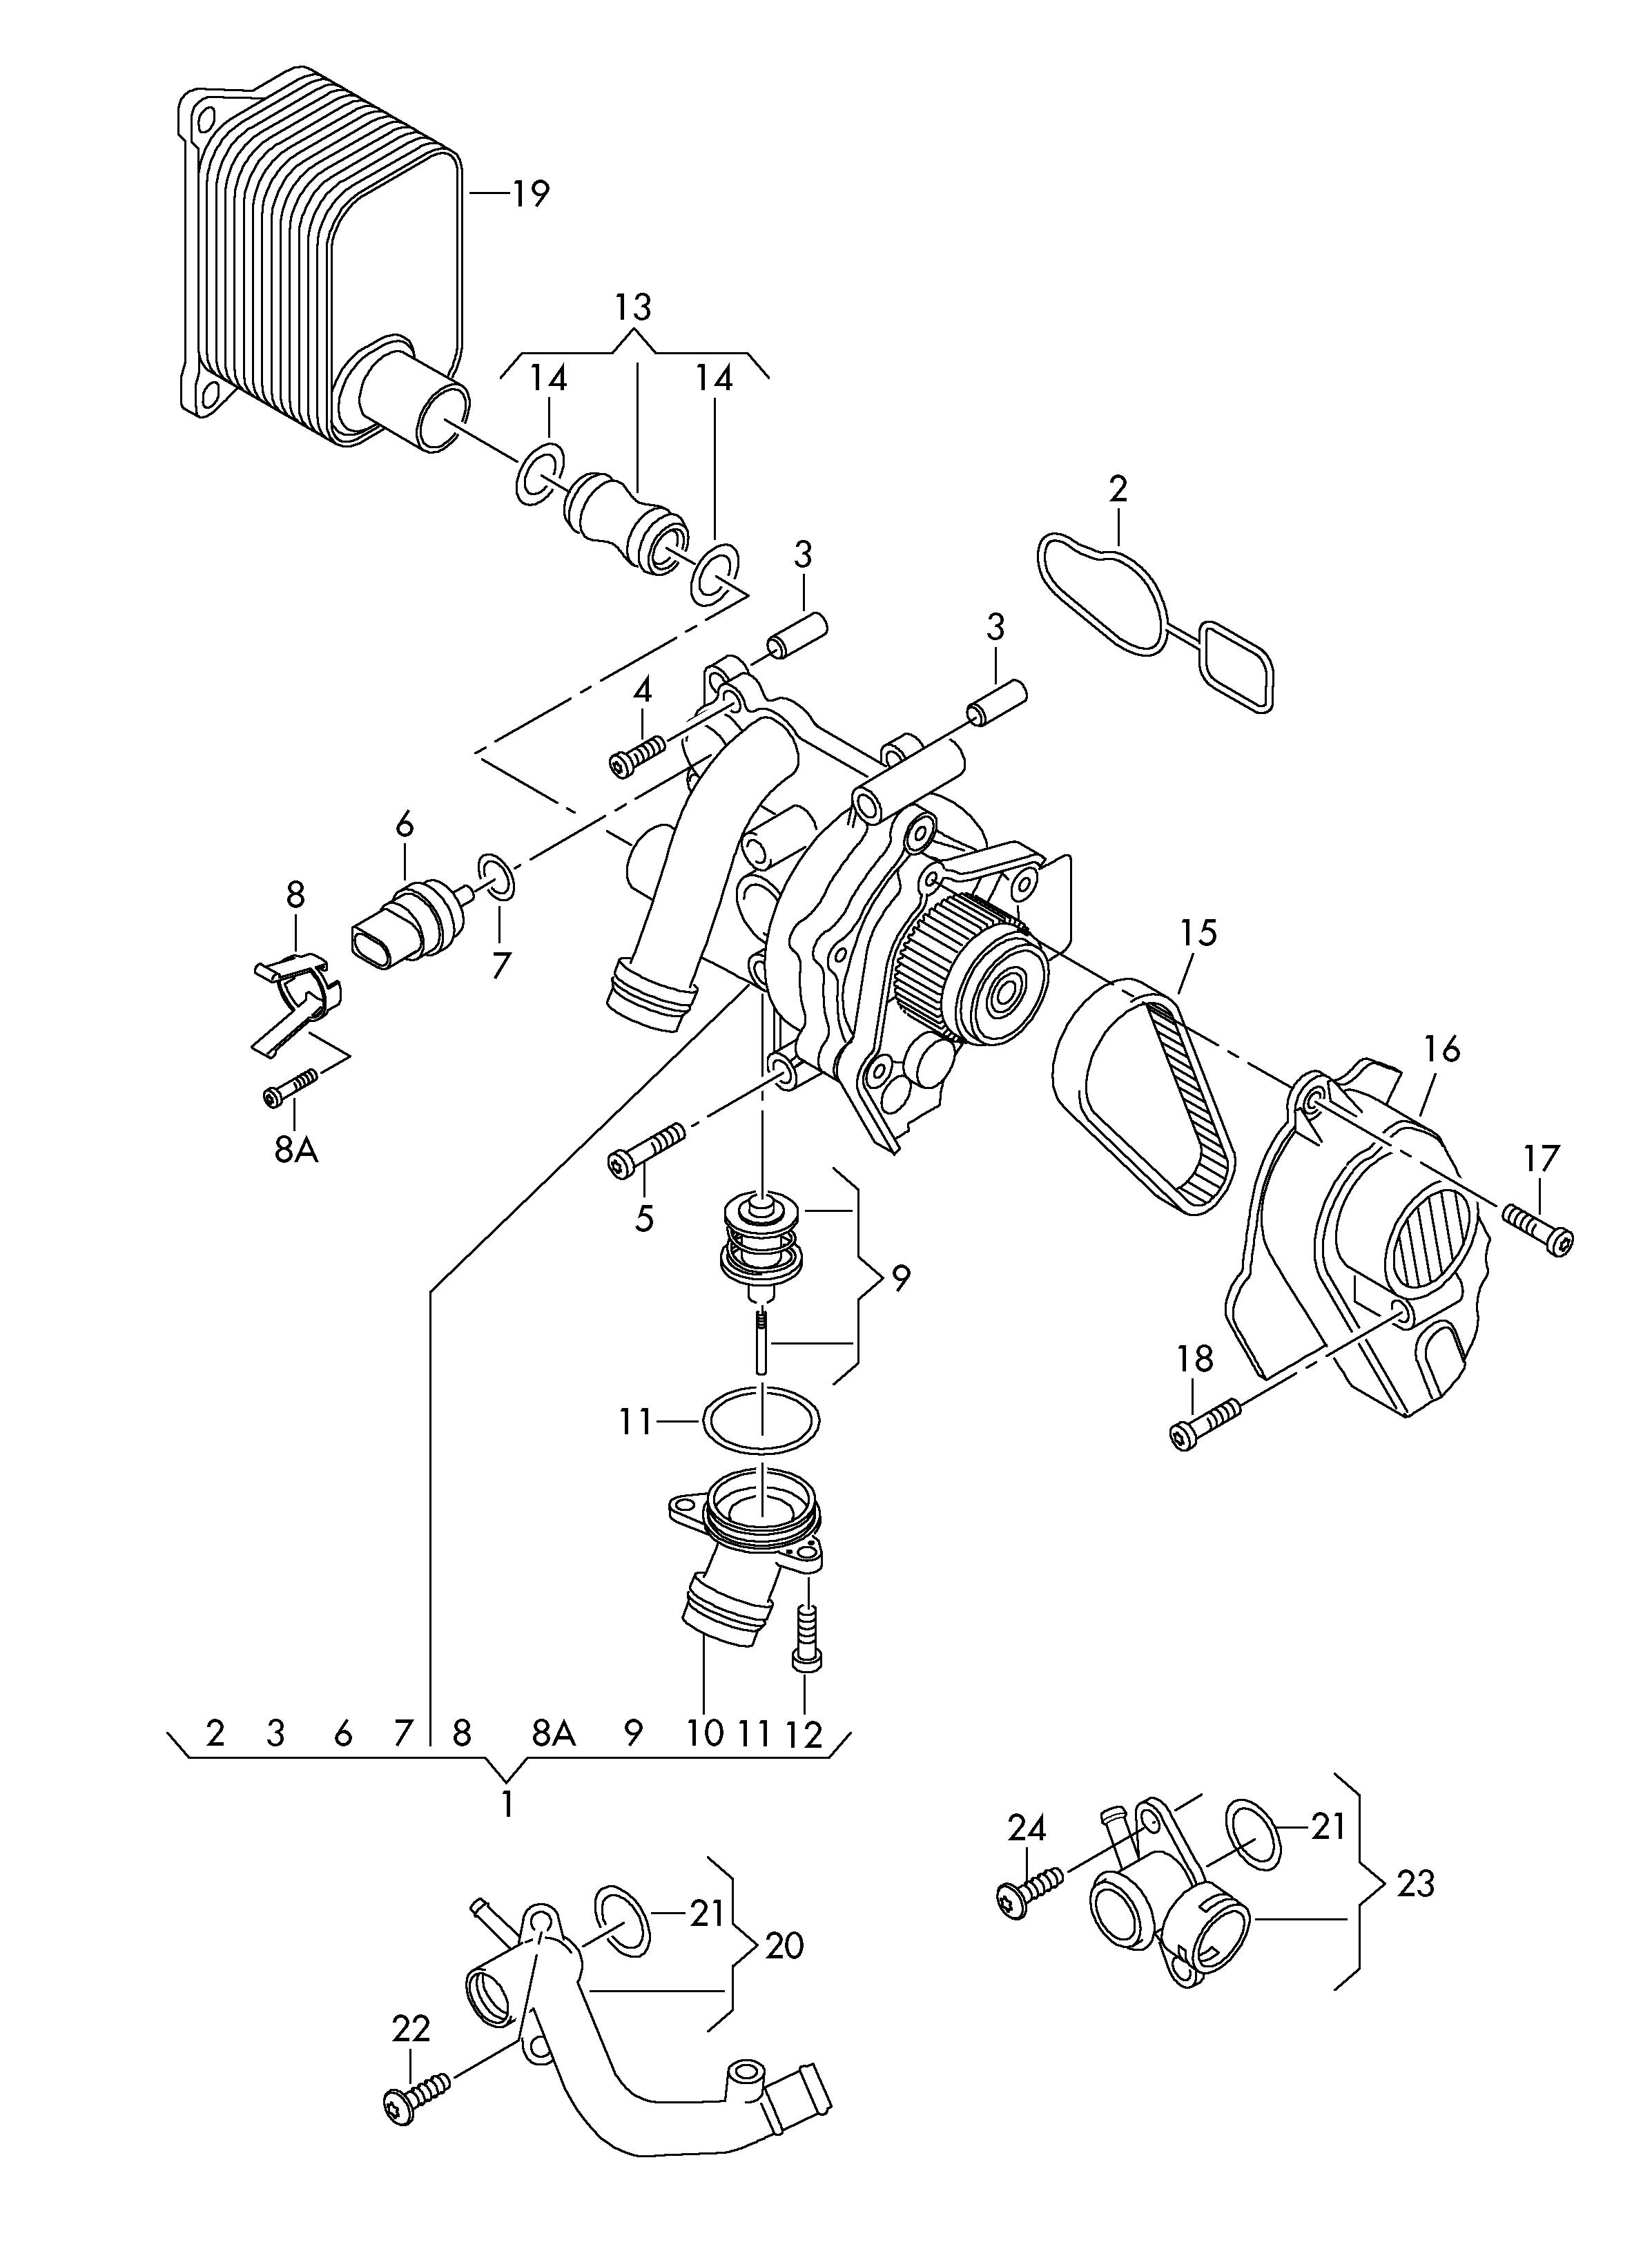 Volkswagen beetle parts and accessories furthermore 496662665125973162 as well wiring diagram ignition coil in addition 71